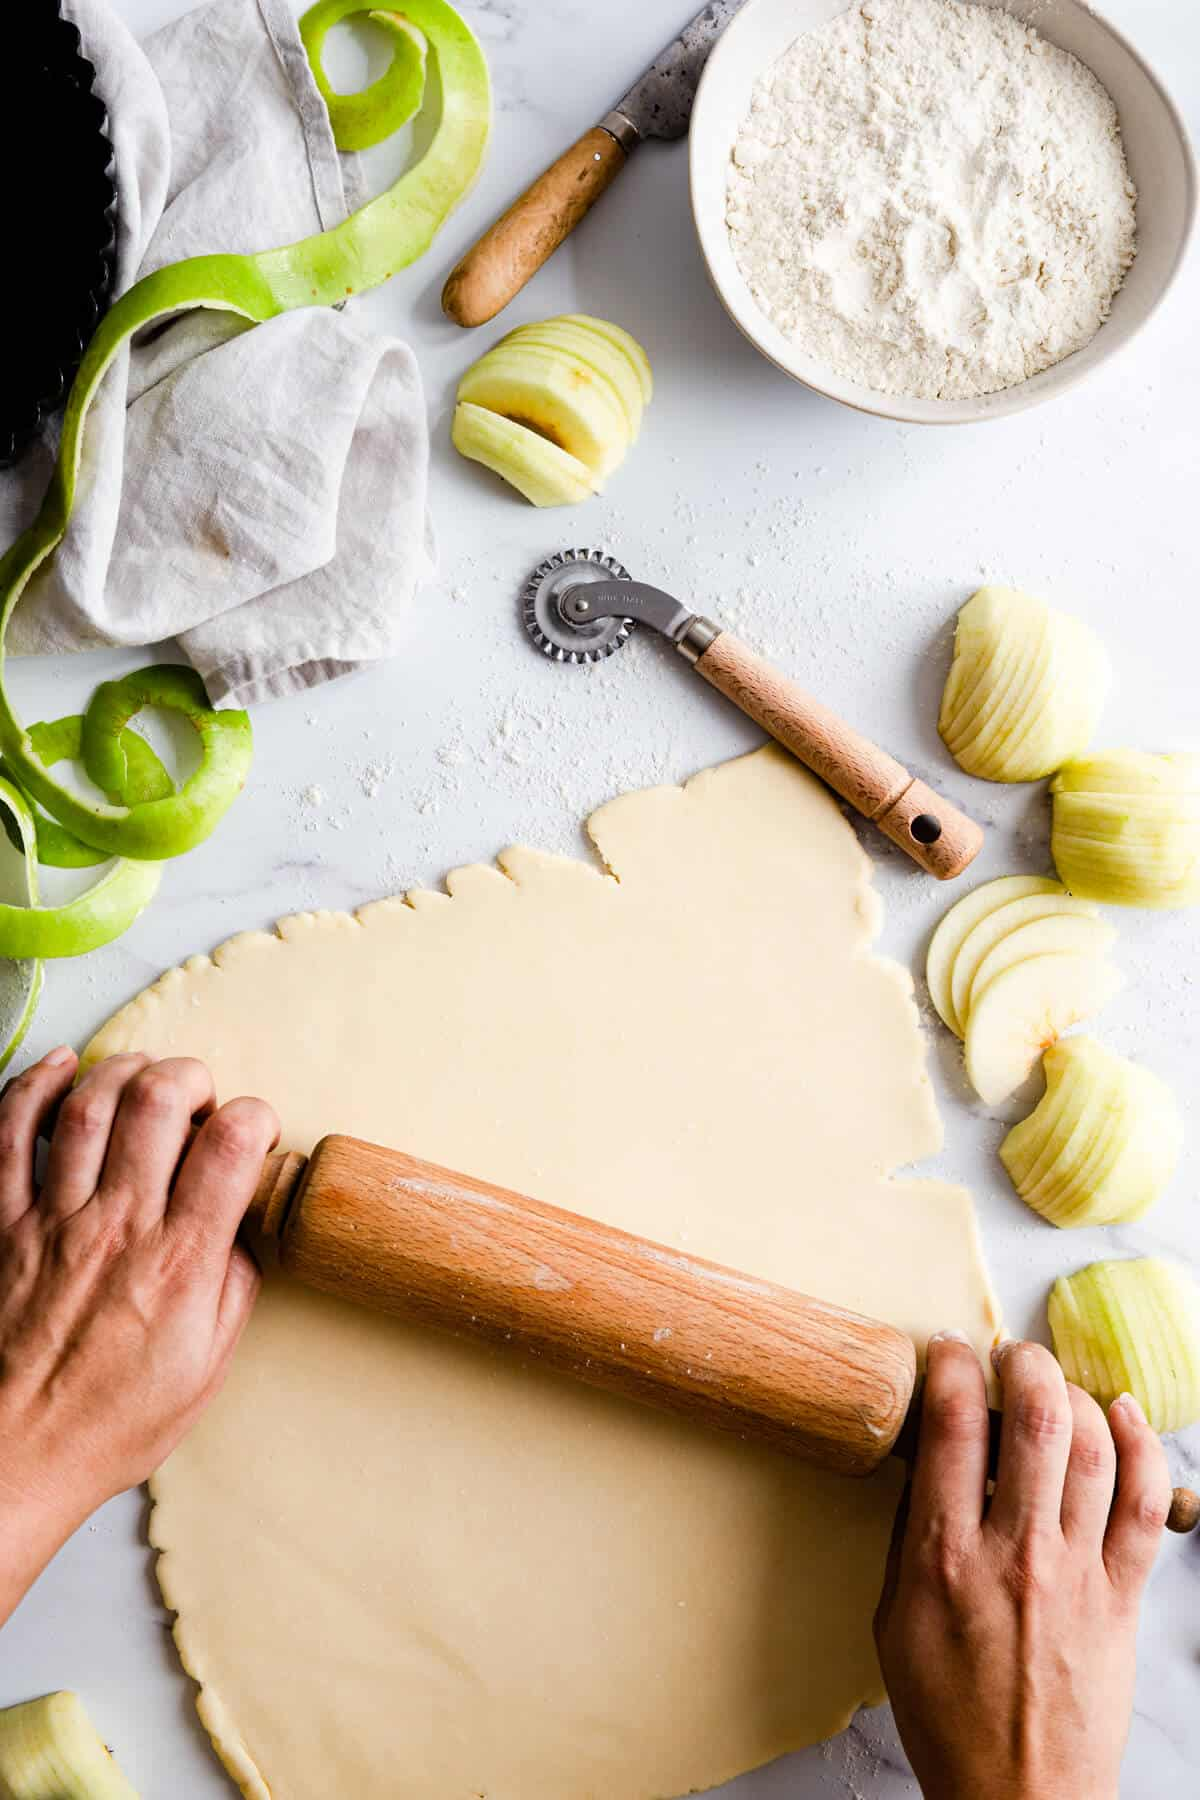 top view of a person rolling some pastry with a rolling pin